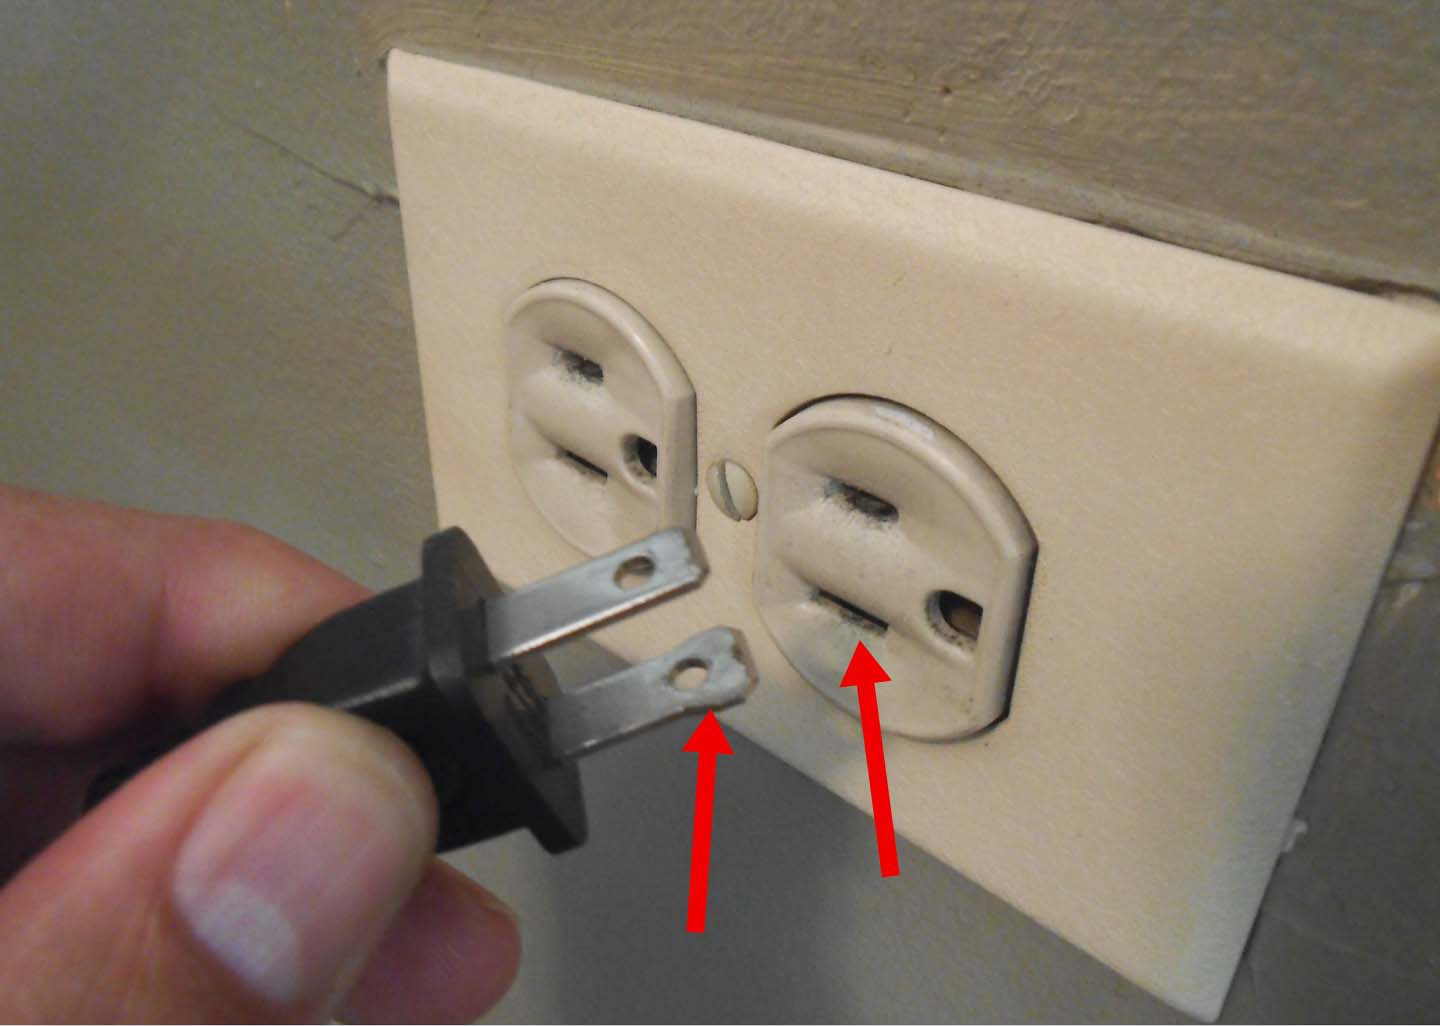 Electrical Wiring In The Home Outlet Question Neutral Wire Hot Wire